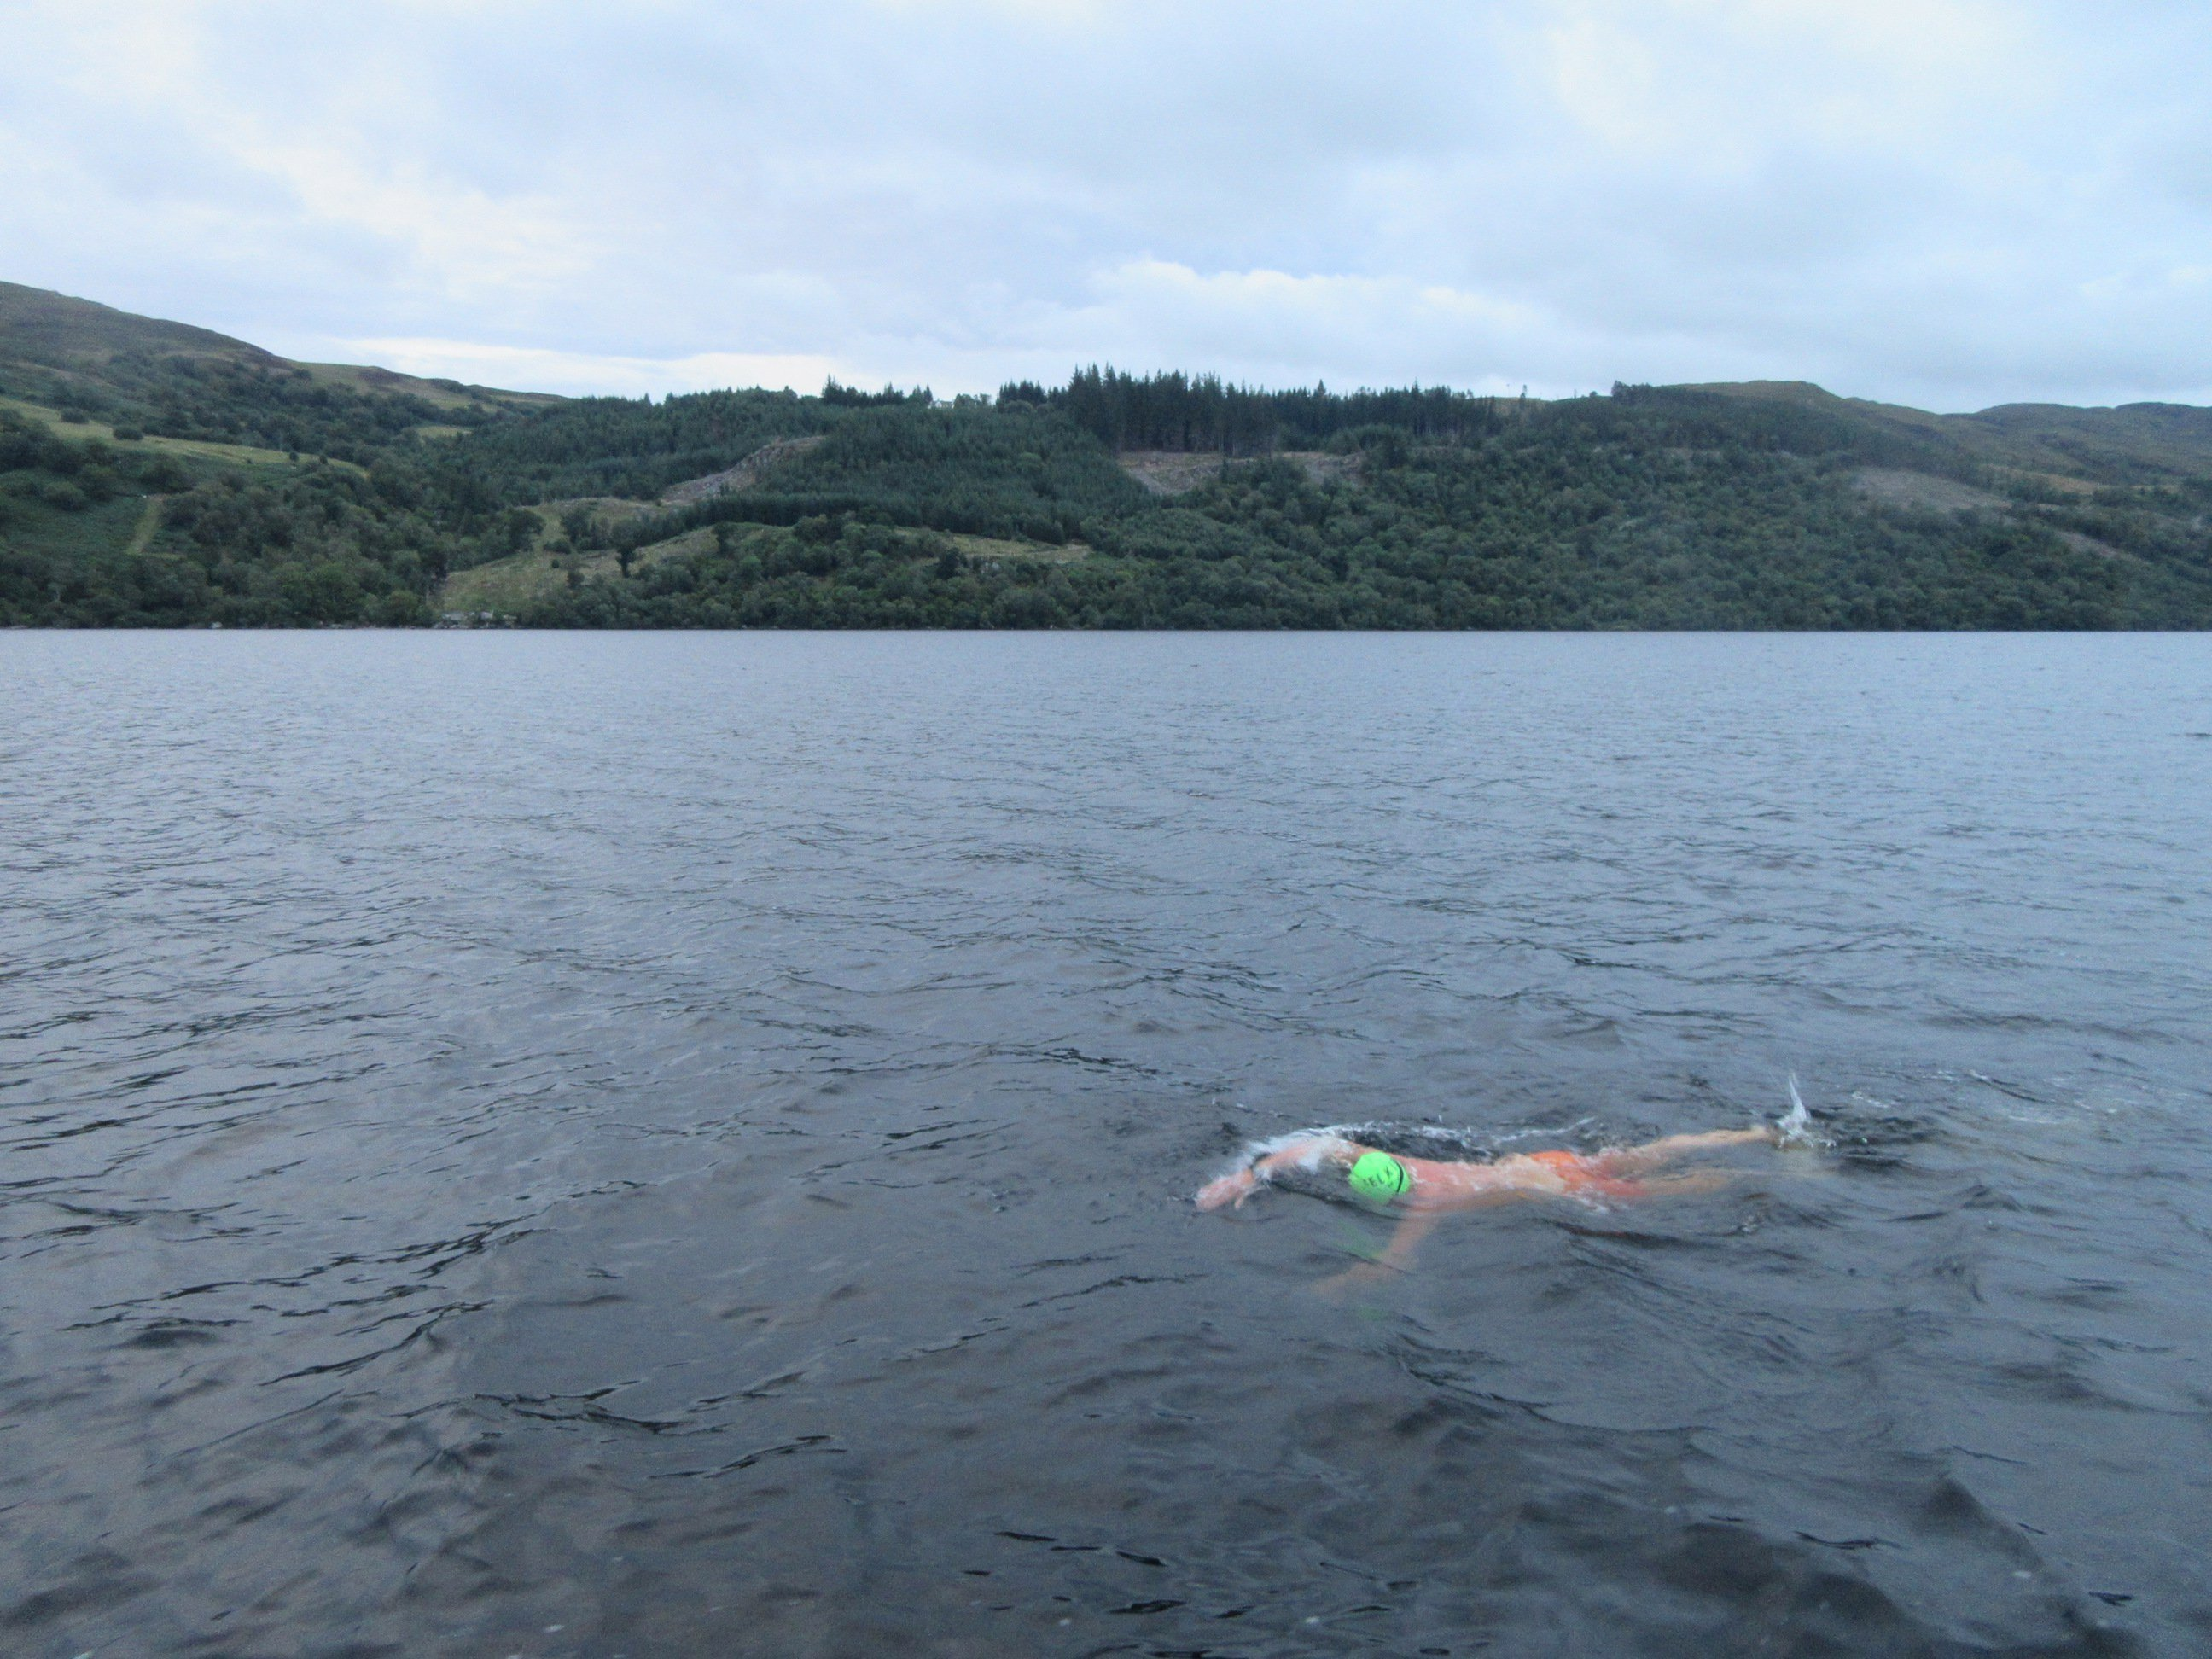 Aspire swimmer making his way across the Loch